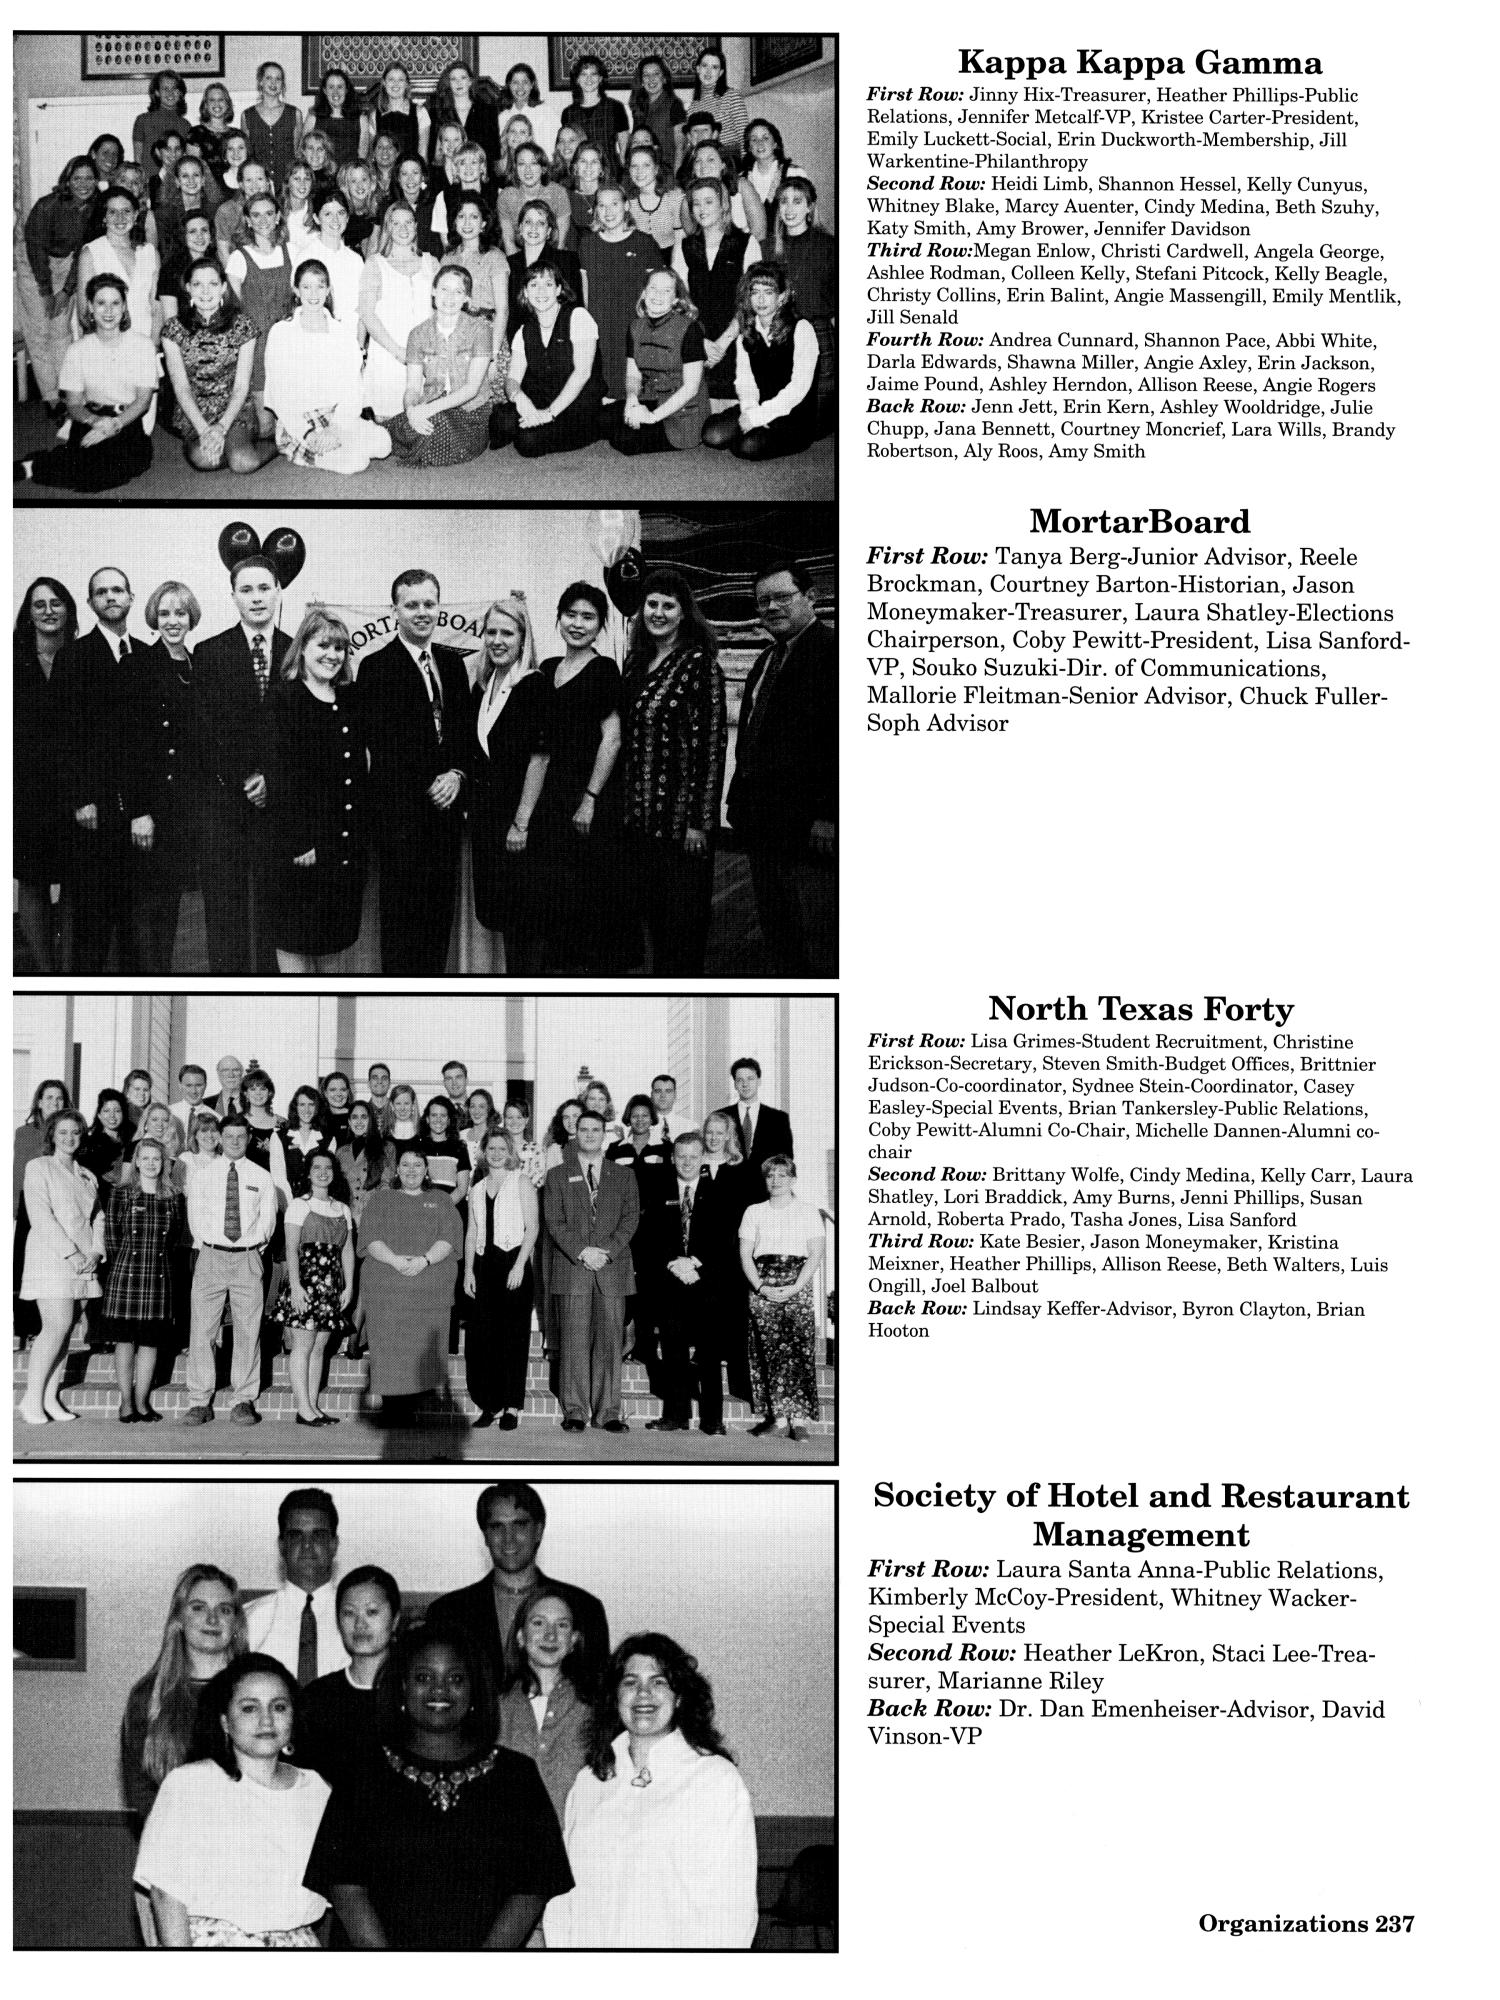 The aerie yearbook of university of north texas 1995 page 44 unt - The Aerie Yearbook Of University Of North Texas 1996 Page 237 The Portal To Texas History